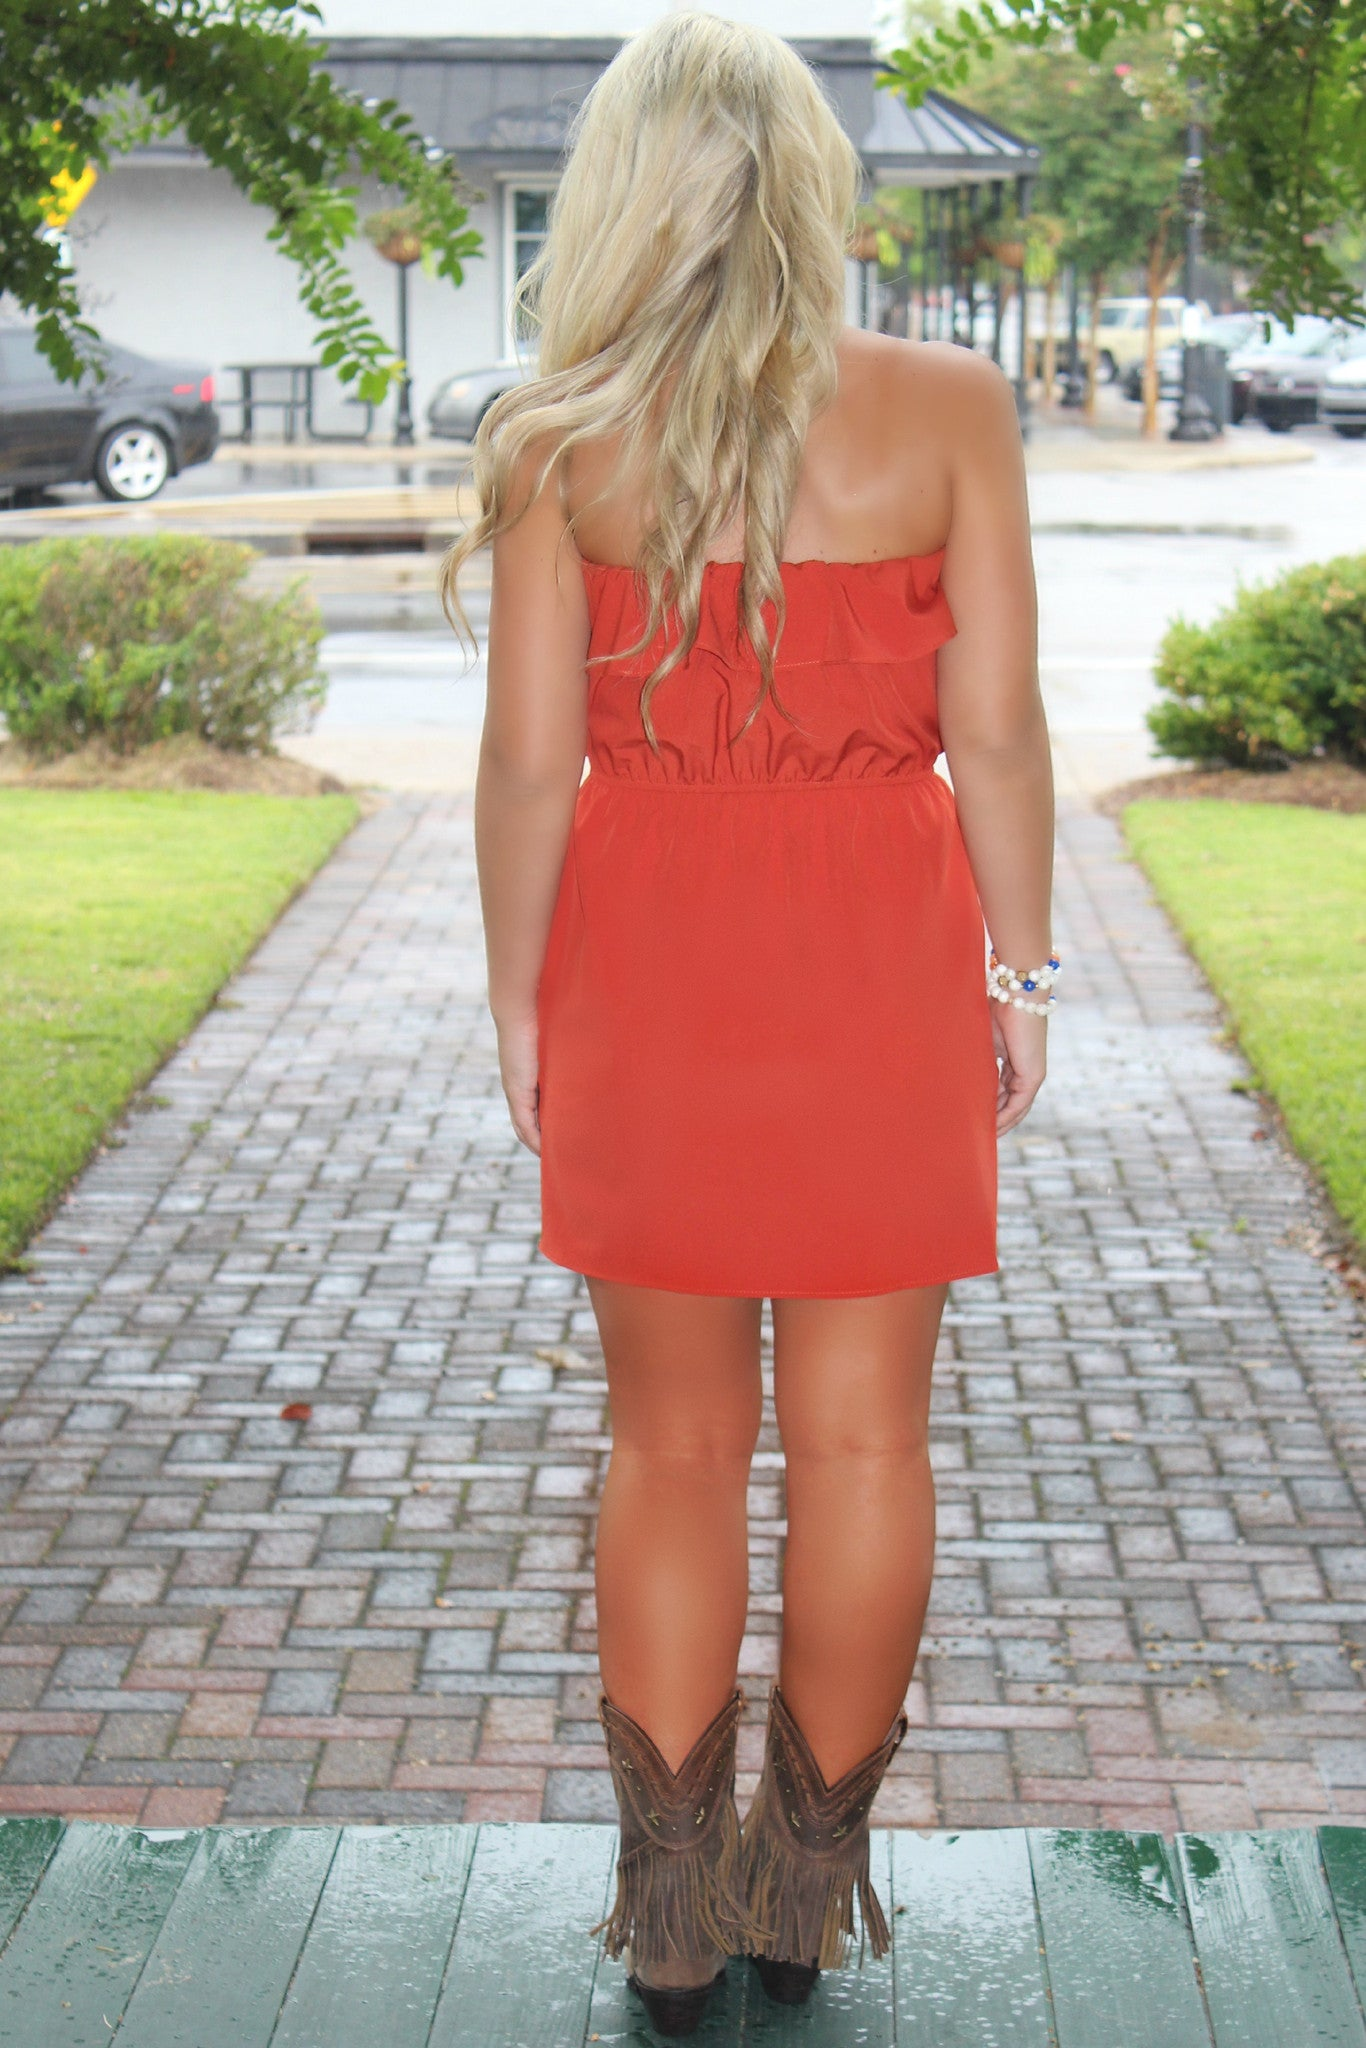 Glam: Lilly Dress, Orange